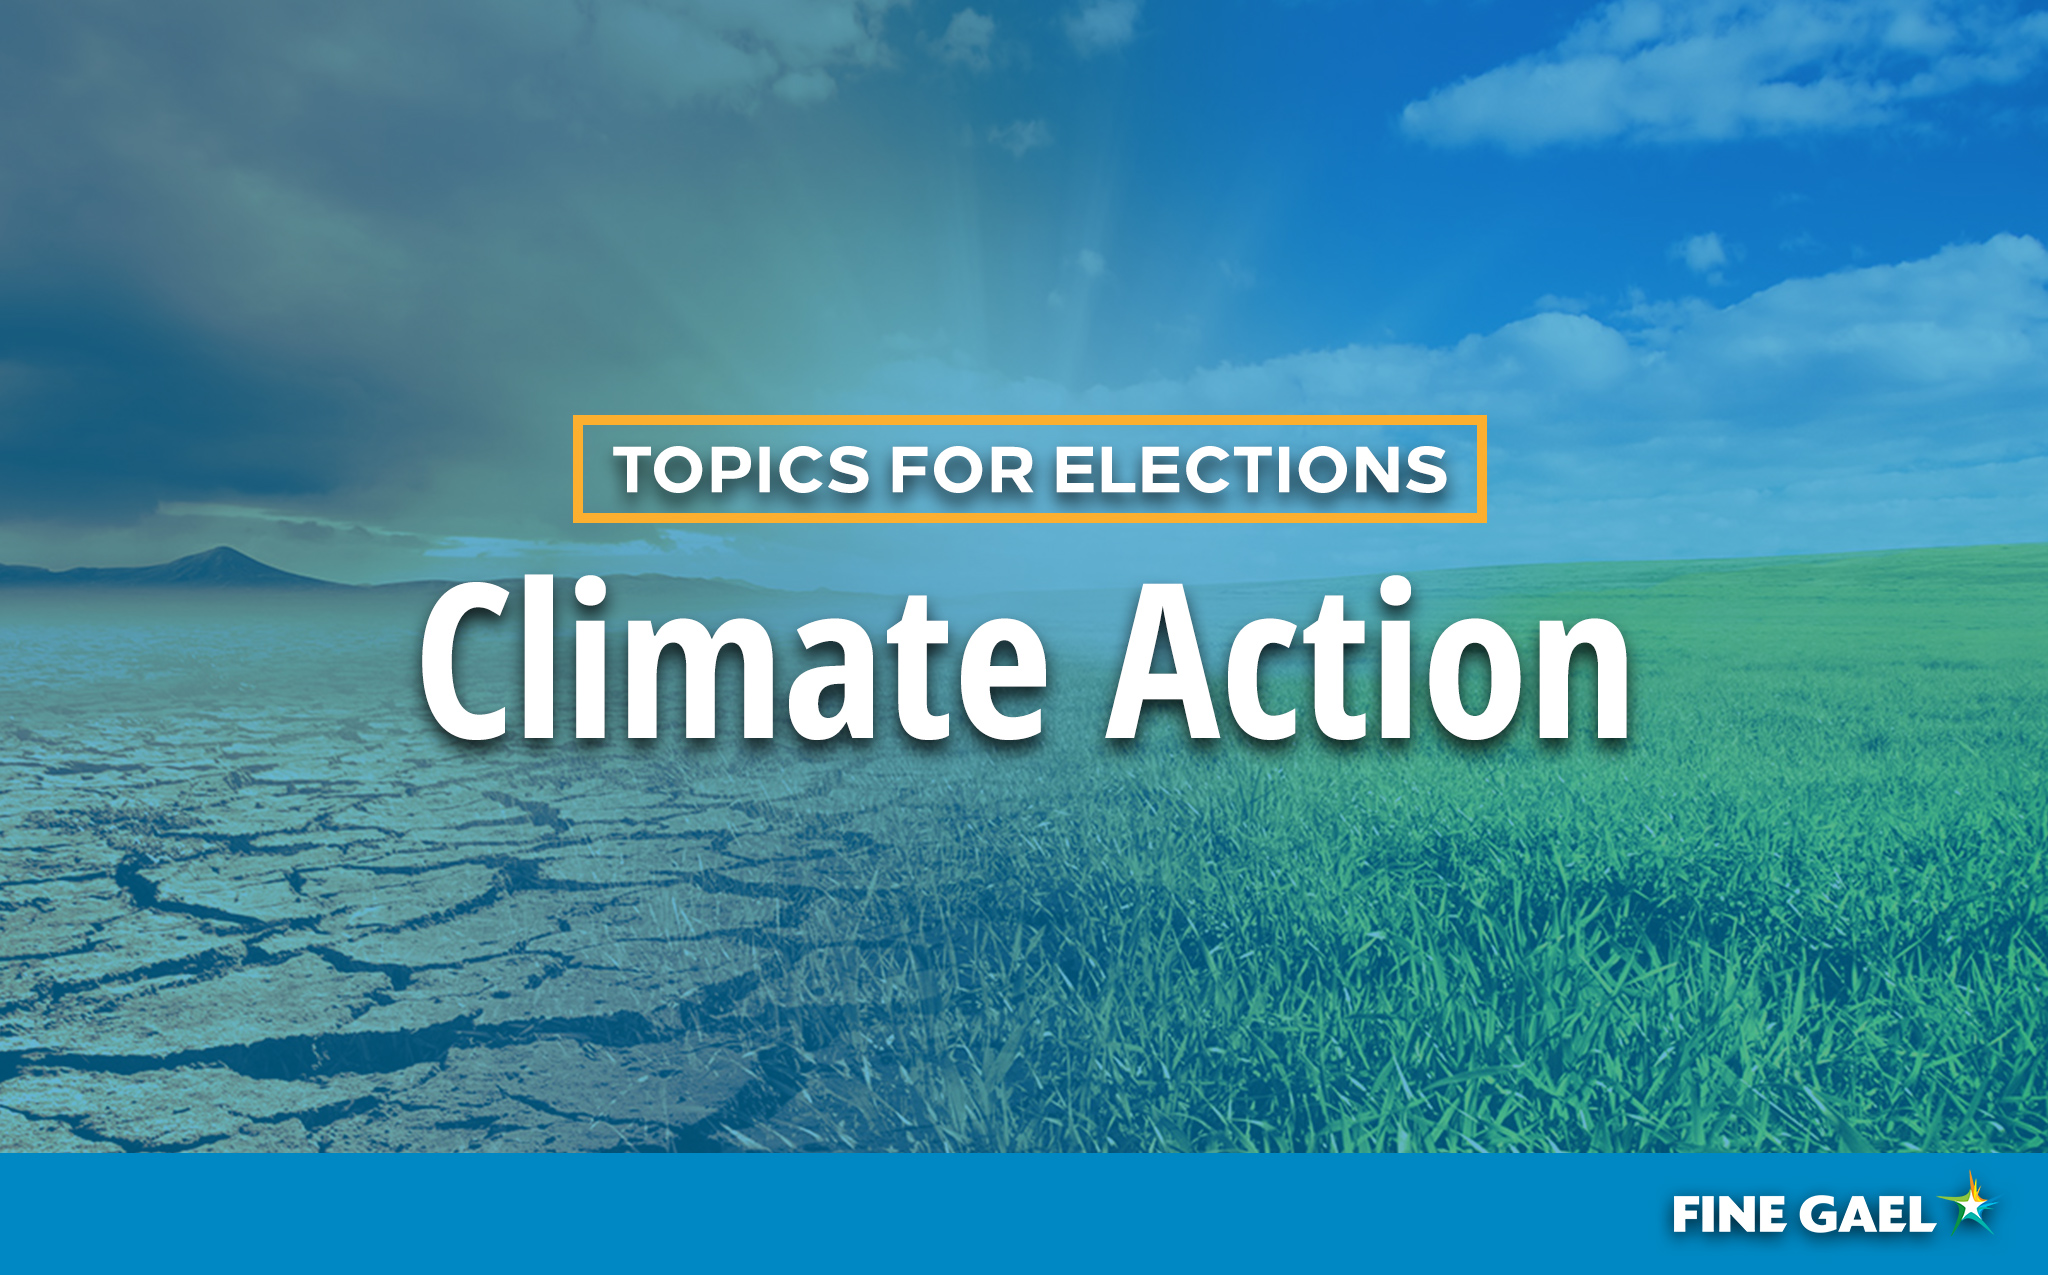 Topics for Elections - Climate Action